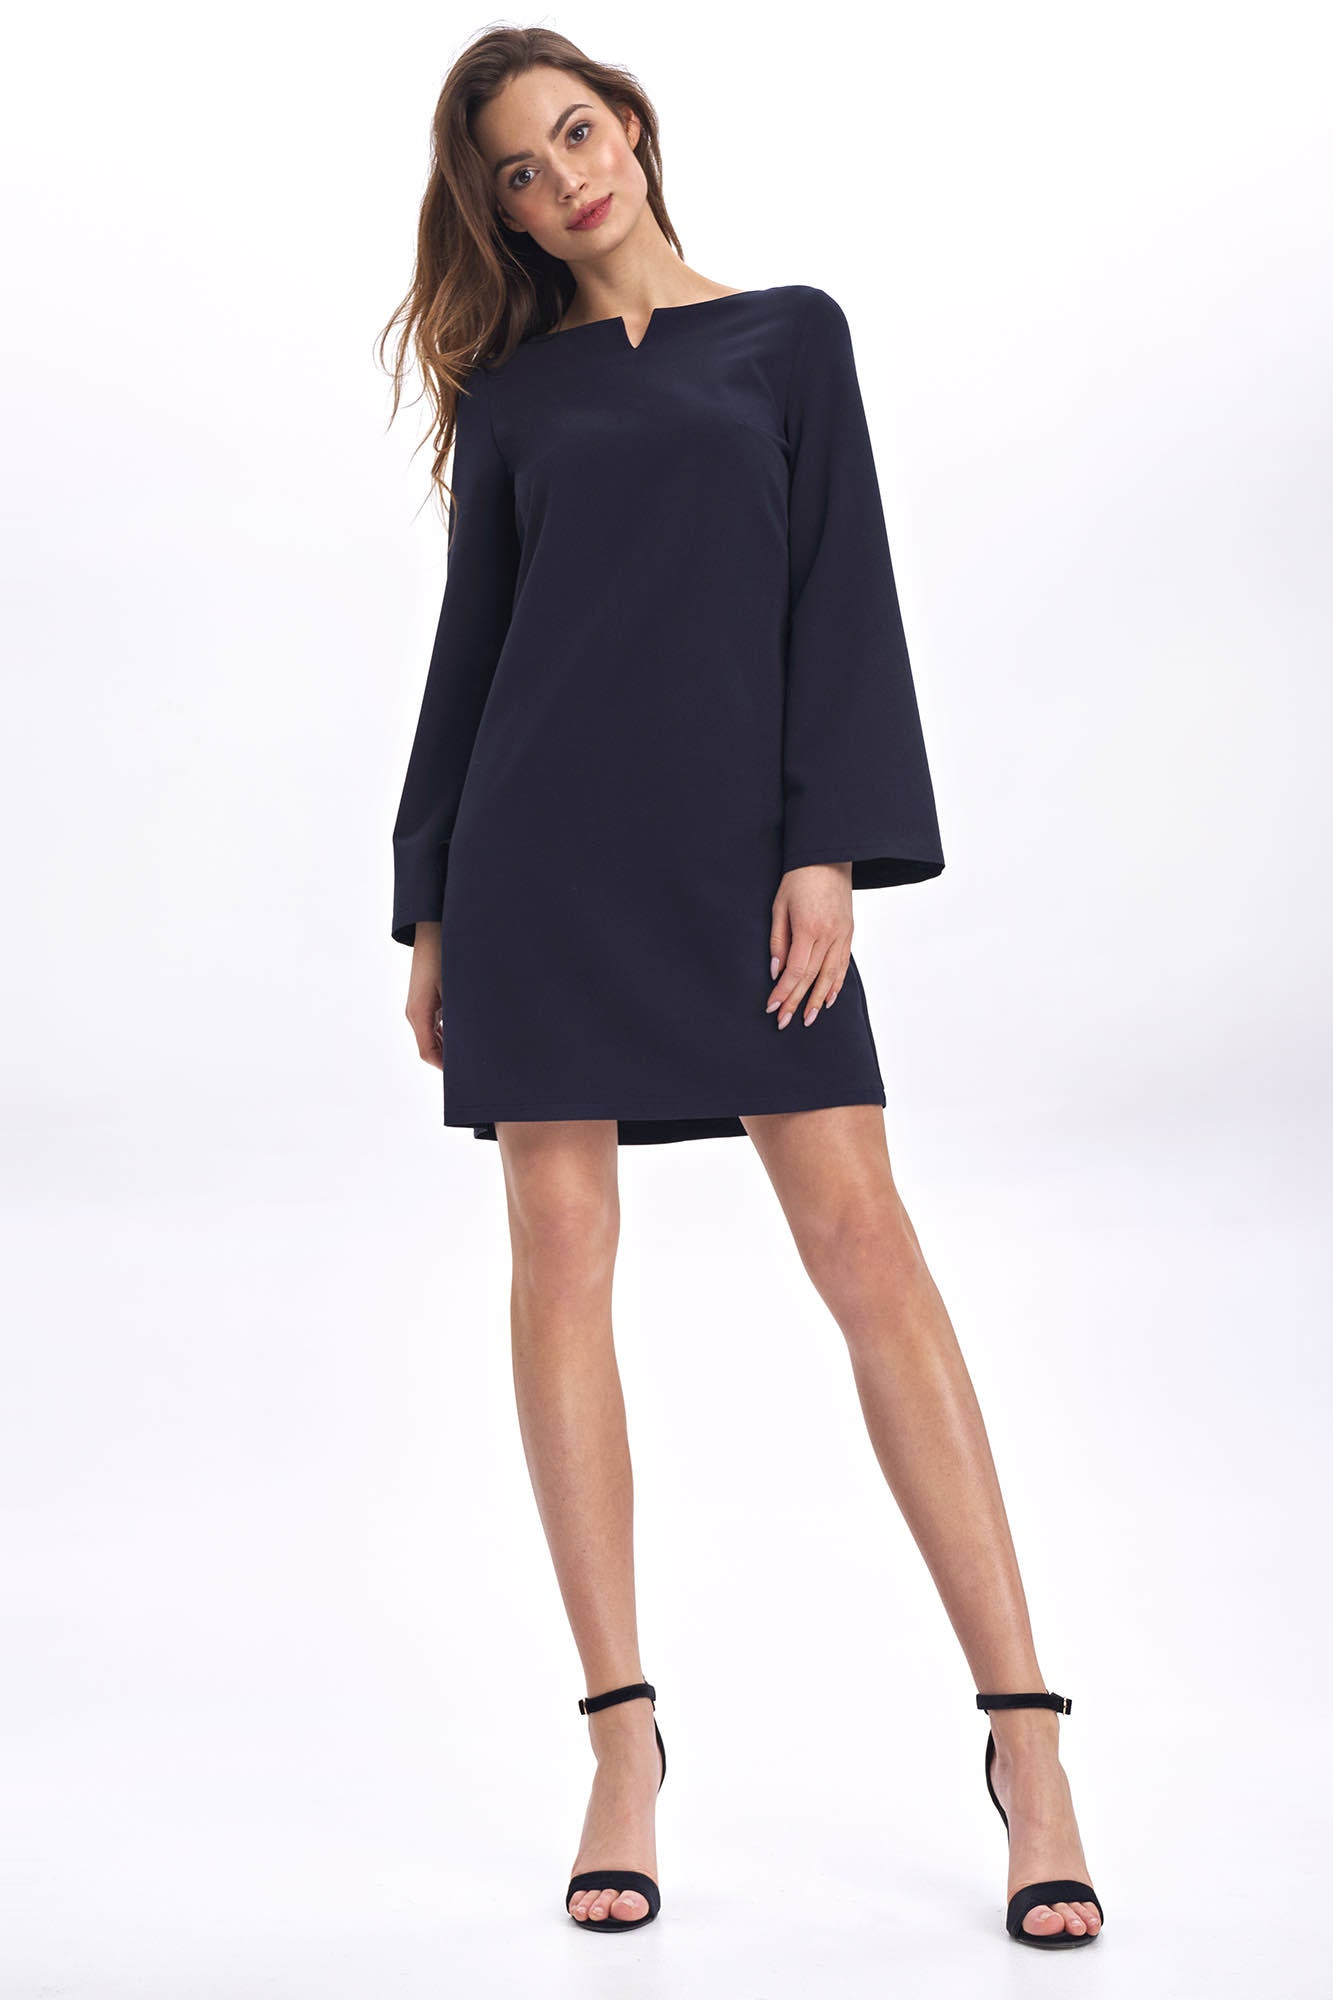 Robe Trapeze Courte Manches Longues Evasees Mademoiselle Grenade